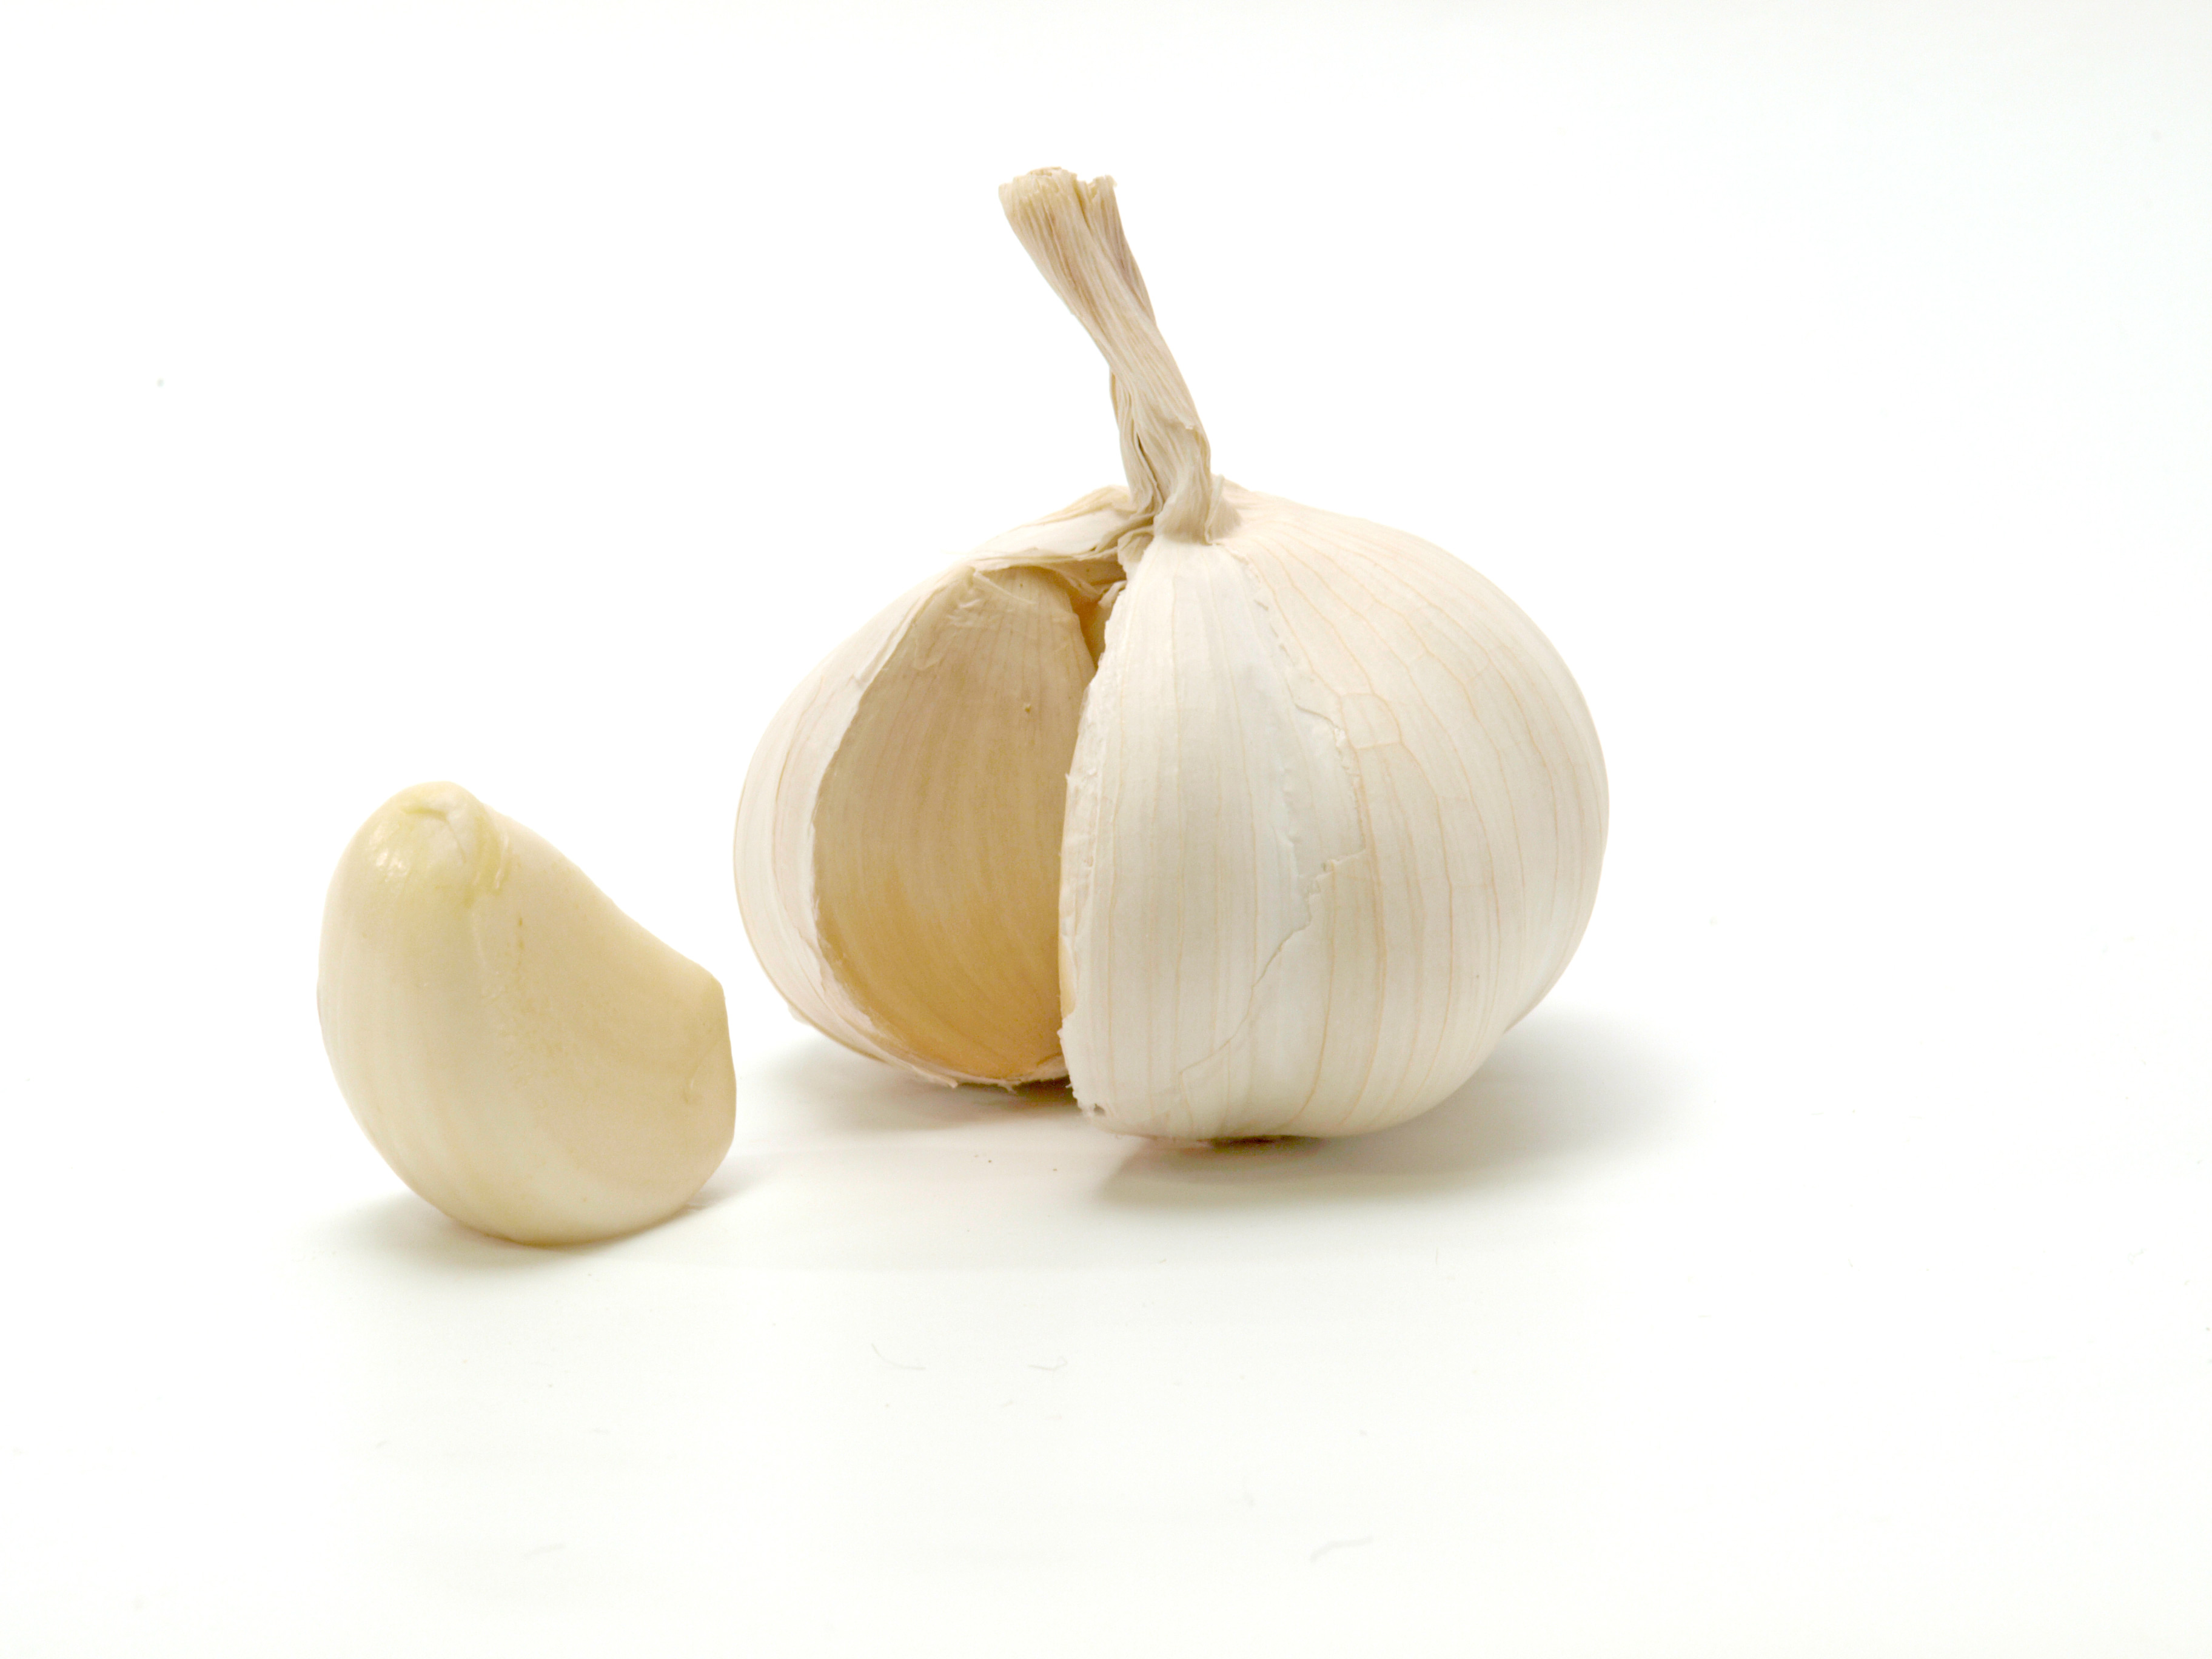 Opened garlic bulb with garlic clove